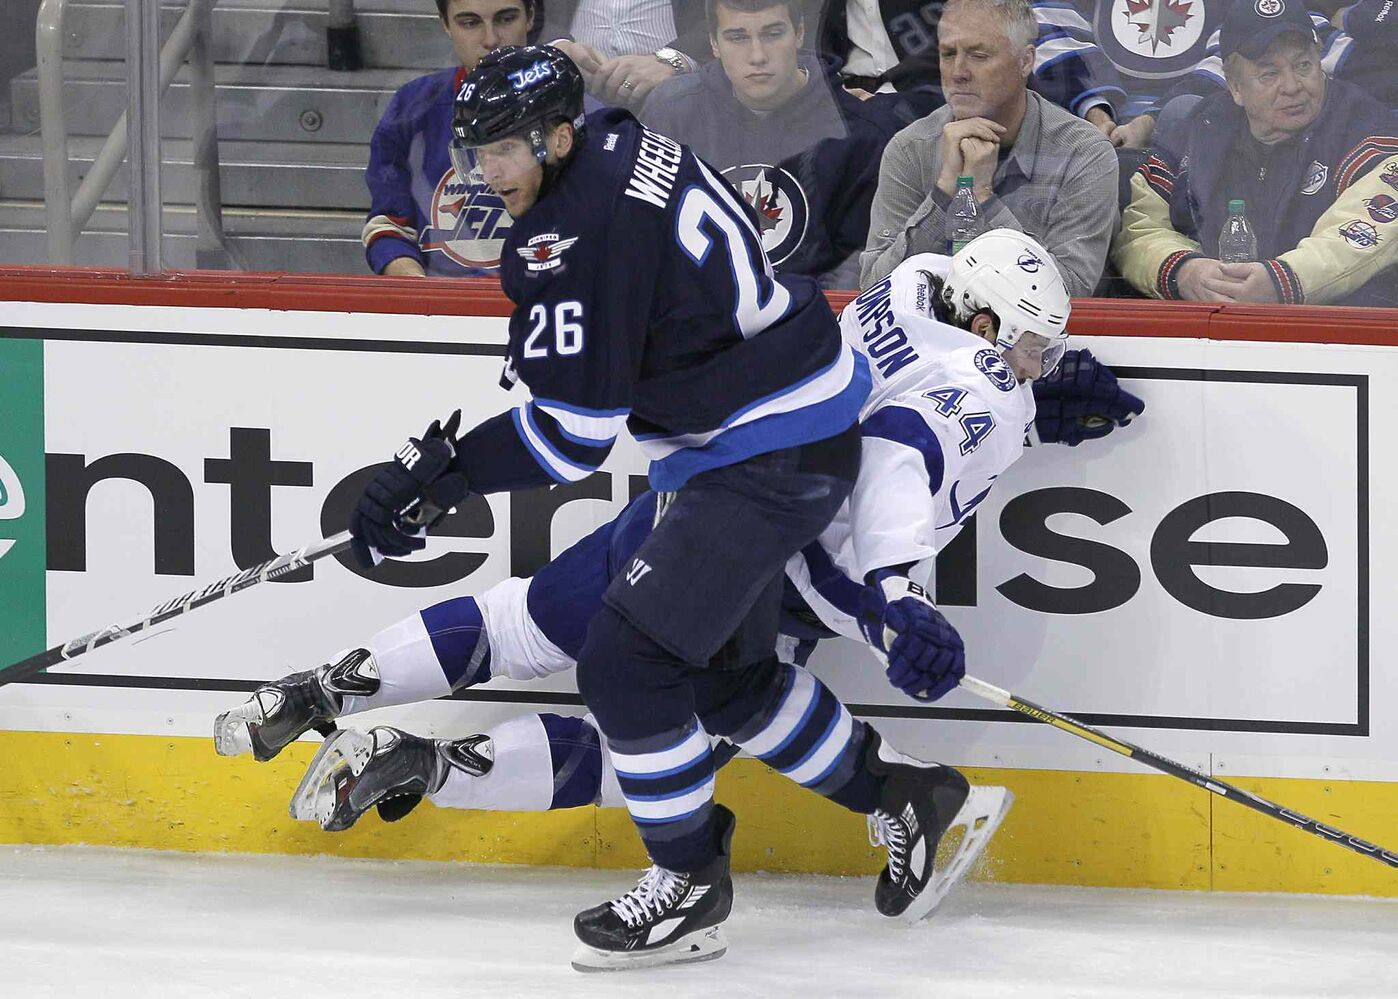 Winnipeg Jets' Blake Wheeler (26) checks Tampa Bay Lightning's Nate Thompson (44) during first period NHL action in Winnipeg Tuesday. (John Woods / Winnipeg Free Press)